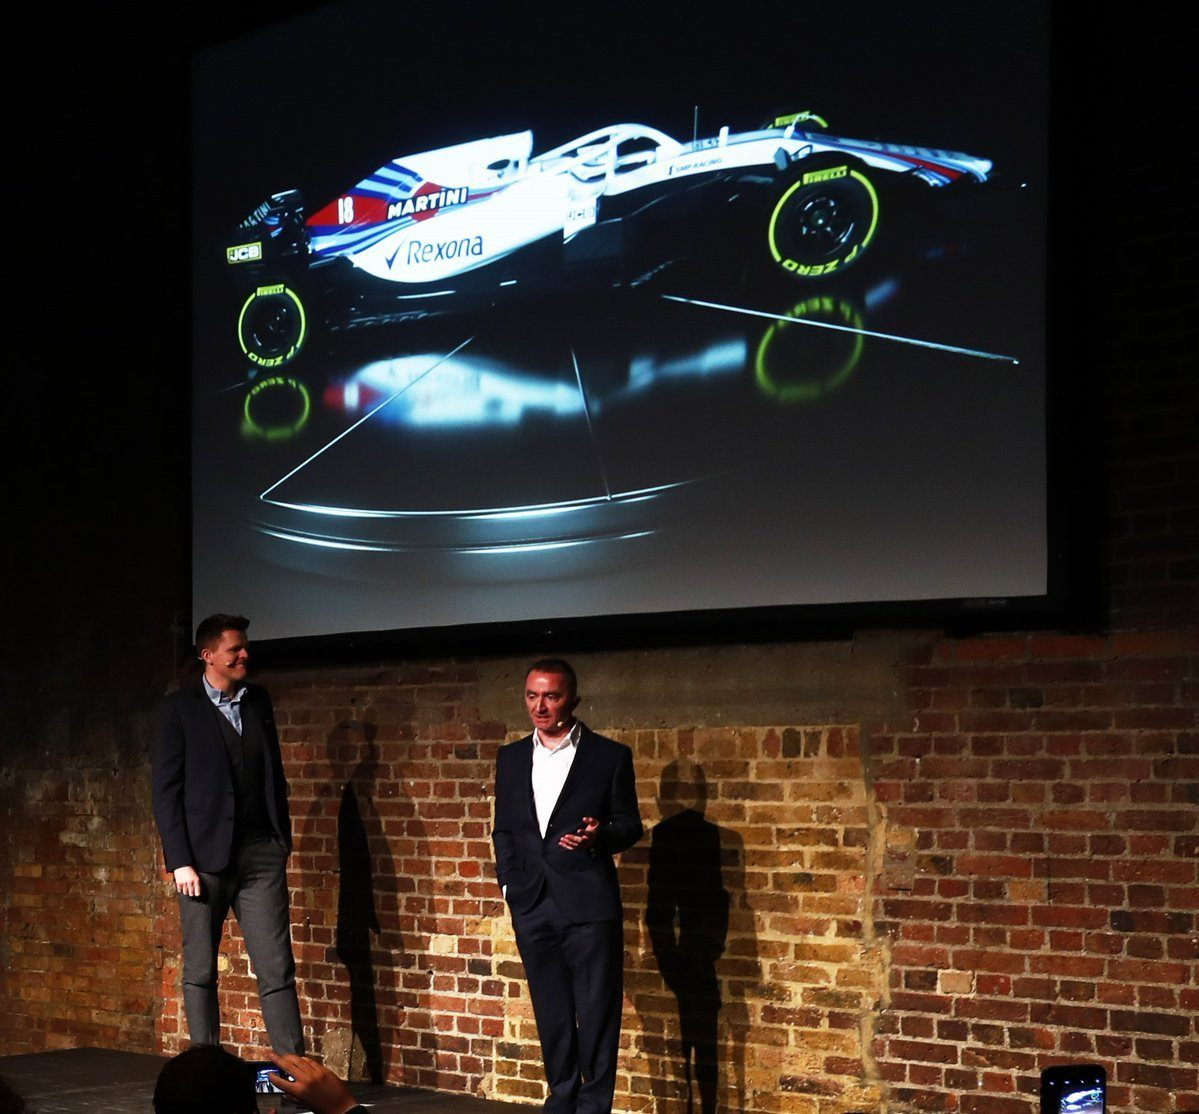 Презентация Williams FW41 © http://f1grandprix.motorionline.com